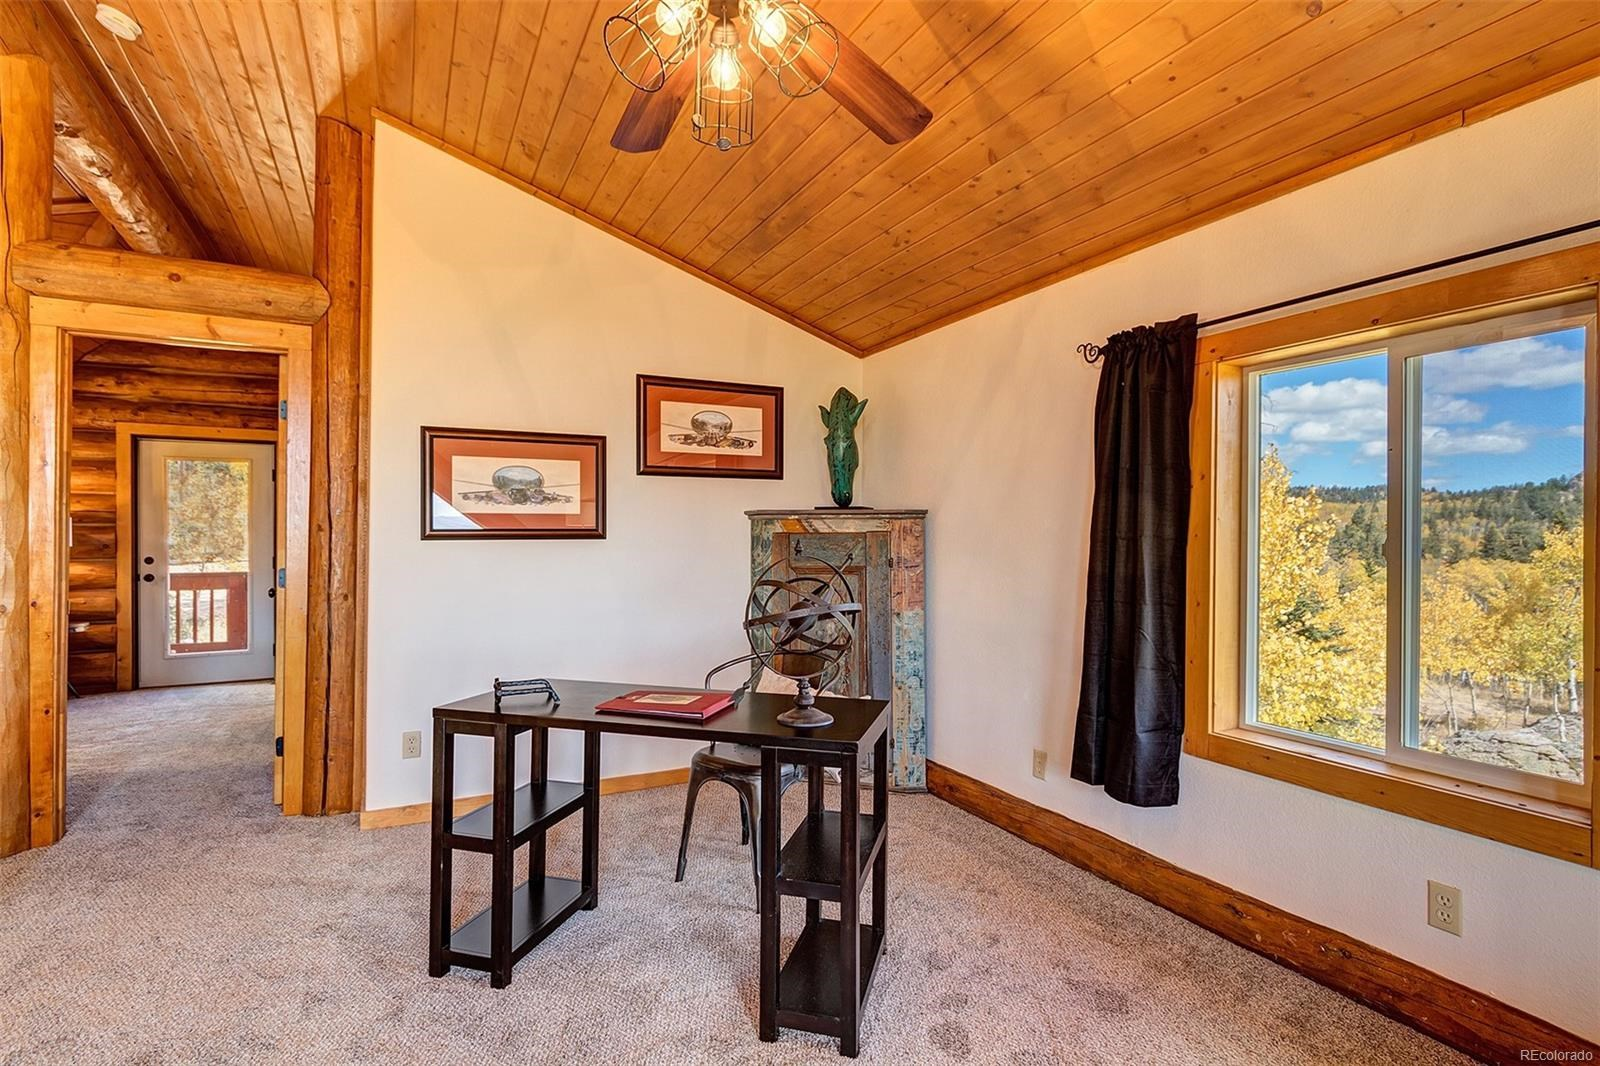 MLS# 8358796 - 16 - 230 Ignacio Way, Como, CO 80456